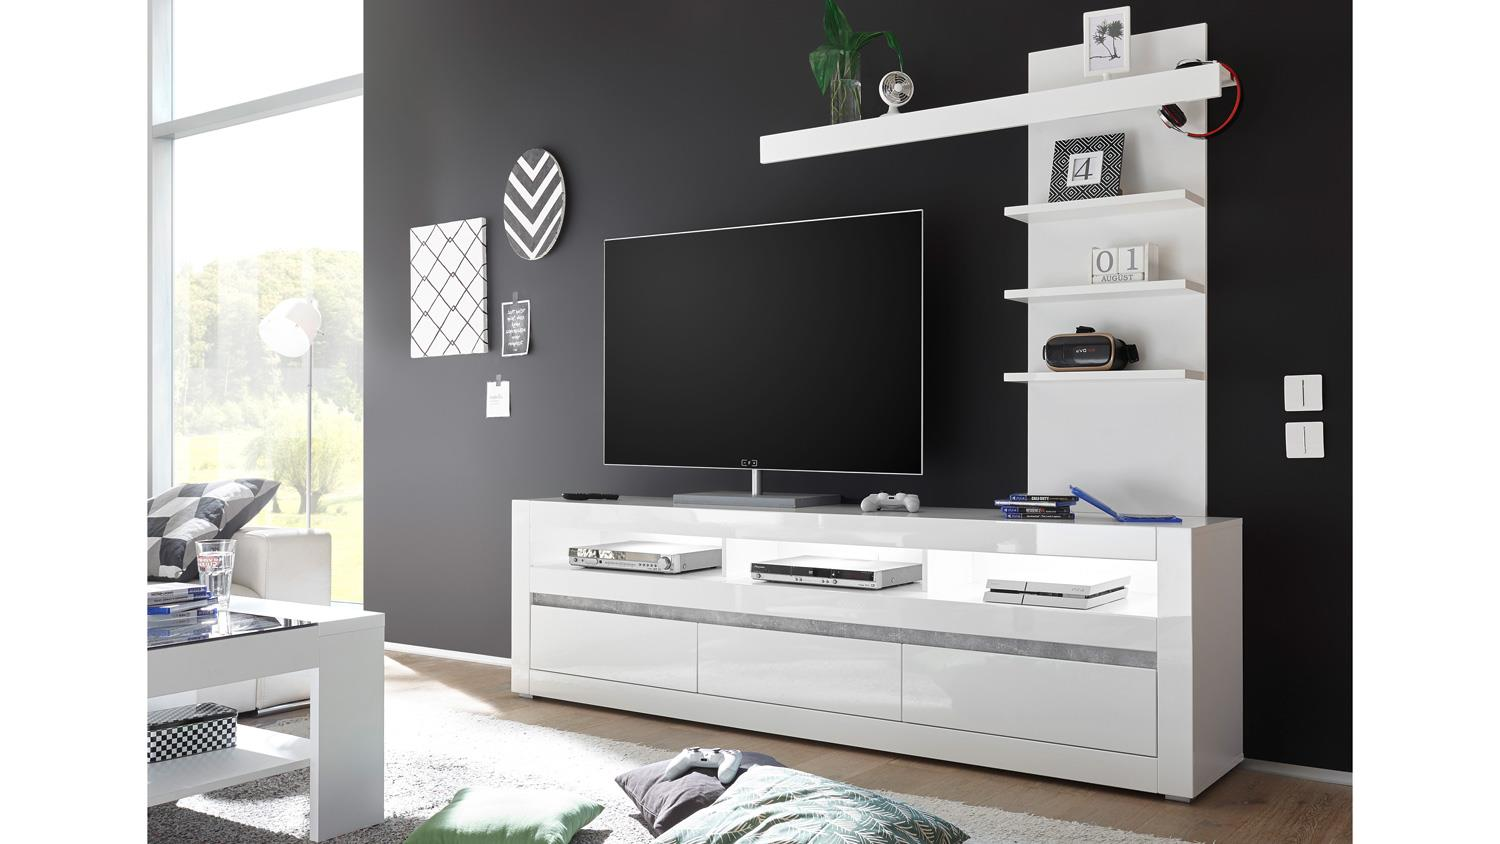 wohnwand 3 carat anbauwand tv board regal wei hochglanz. Black Bedroom Furniture Sets. Home Design Ideas